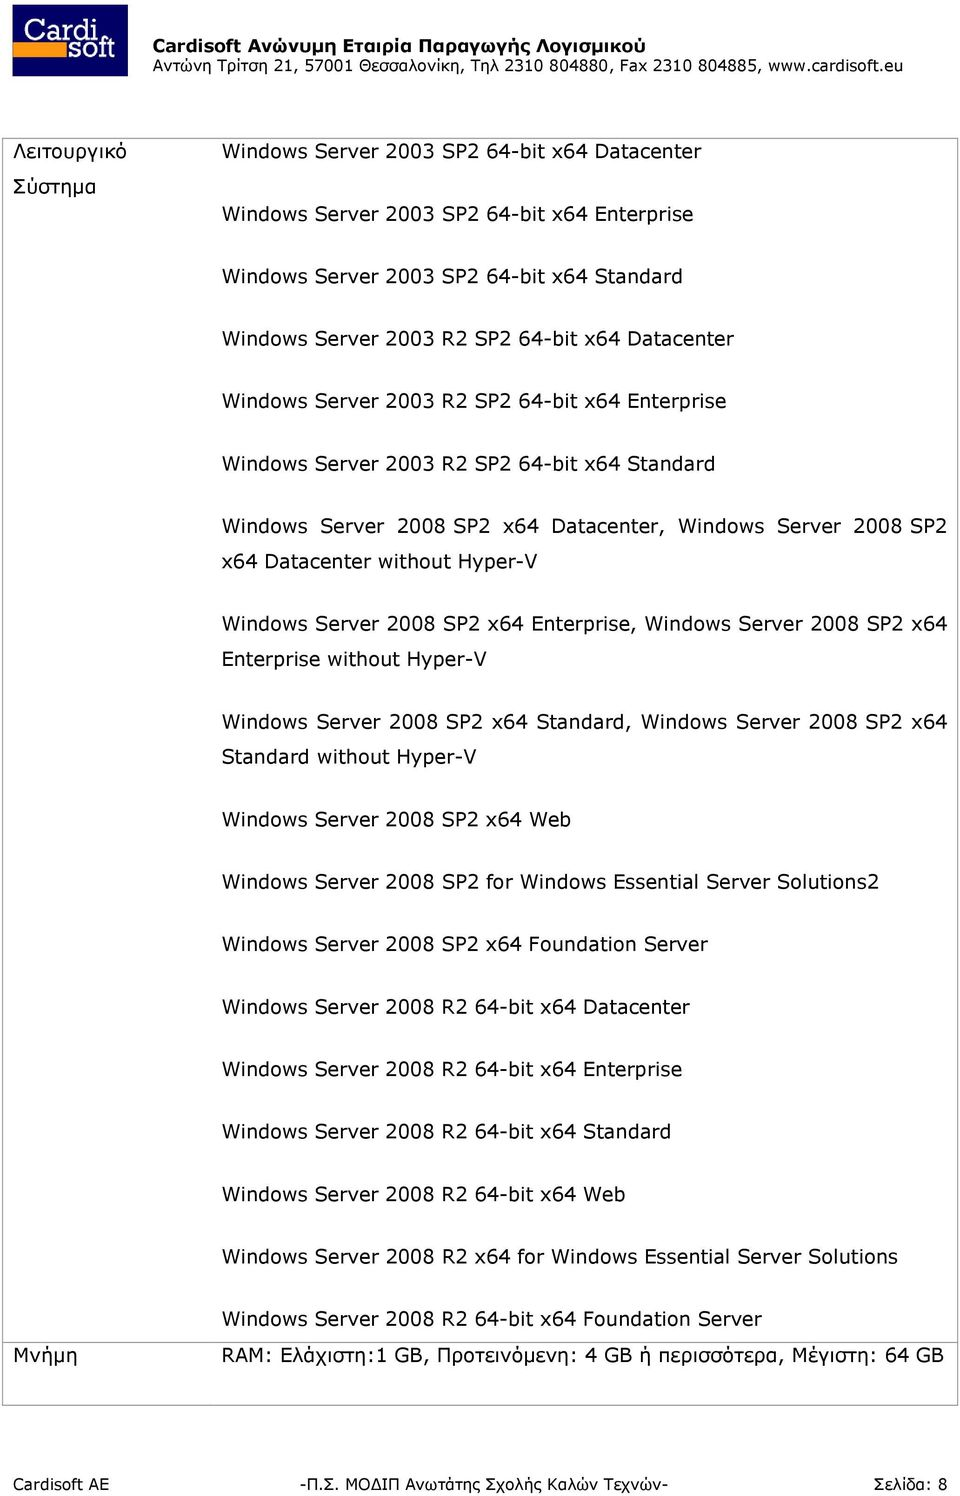 Hyper-V Windows Server 2008 SP2 x64 Enterprise, Windows Server 2008 SP2 x64 Enterprise without Hyper-V Windows Server 2008 SP2 x64 Standard, Windows Server 2008 SP2 x64 Standard without Hyper-V